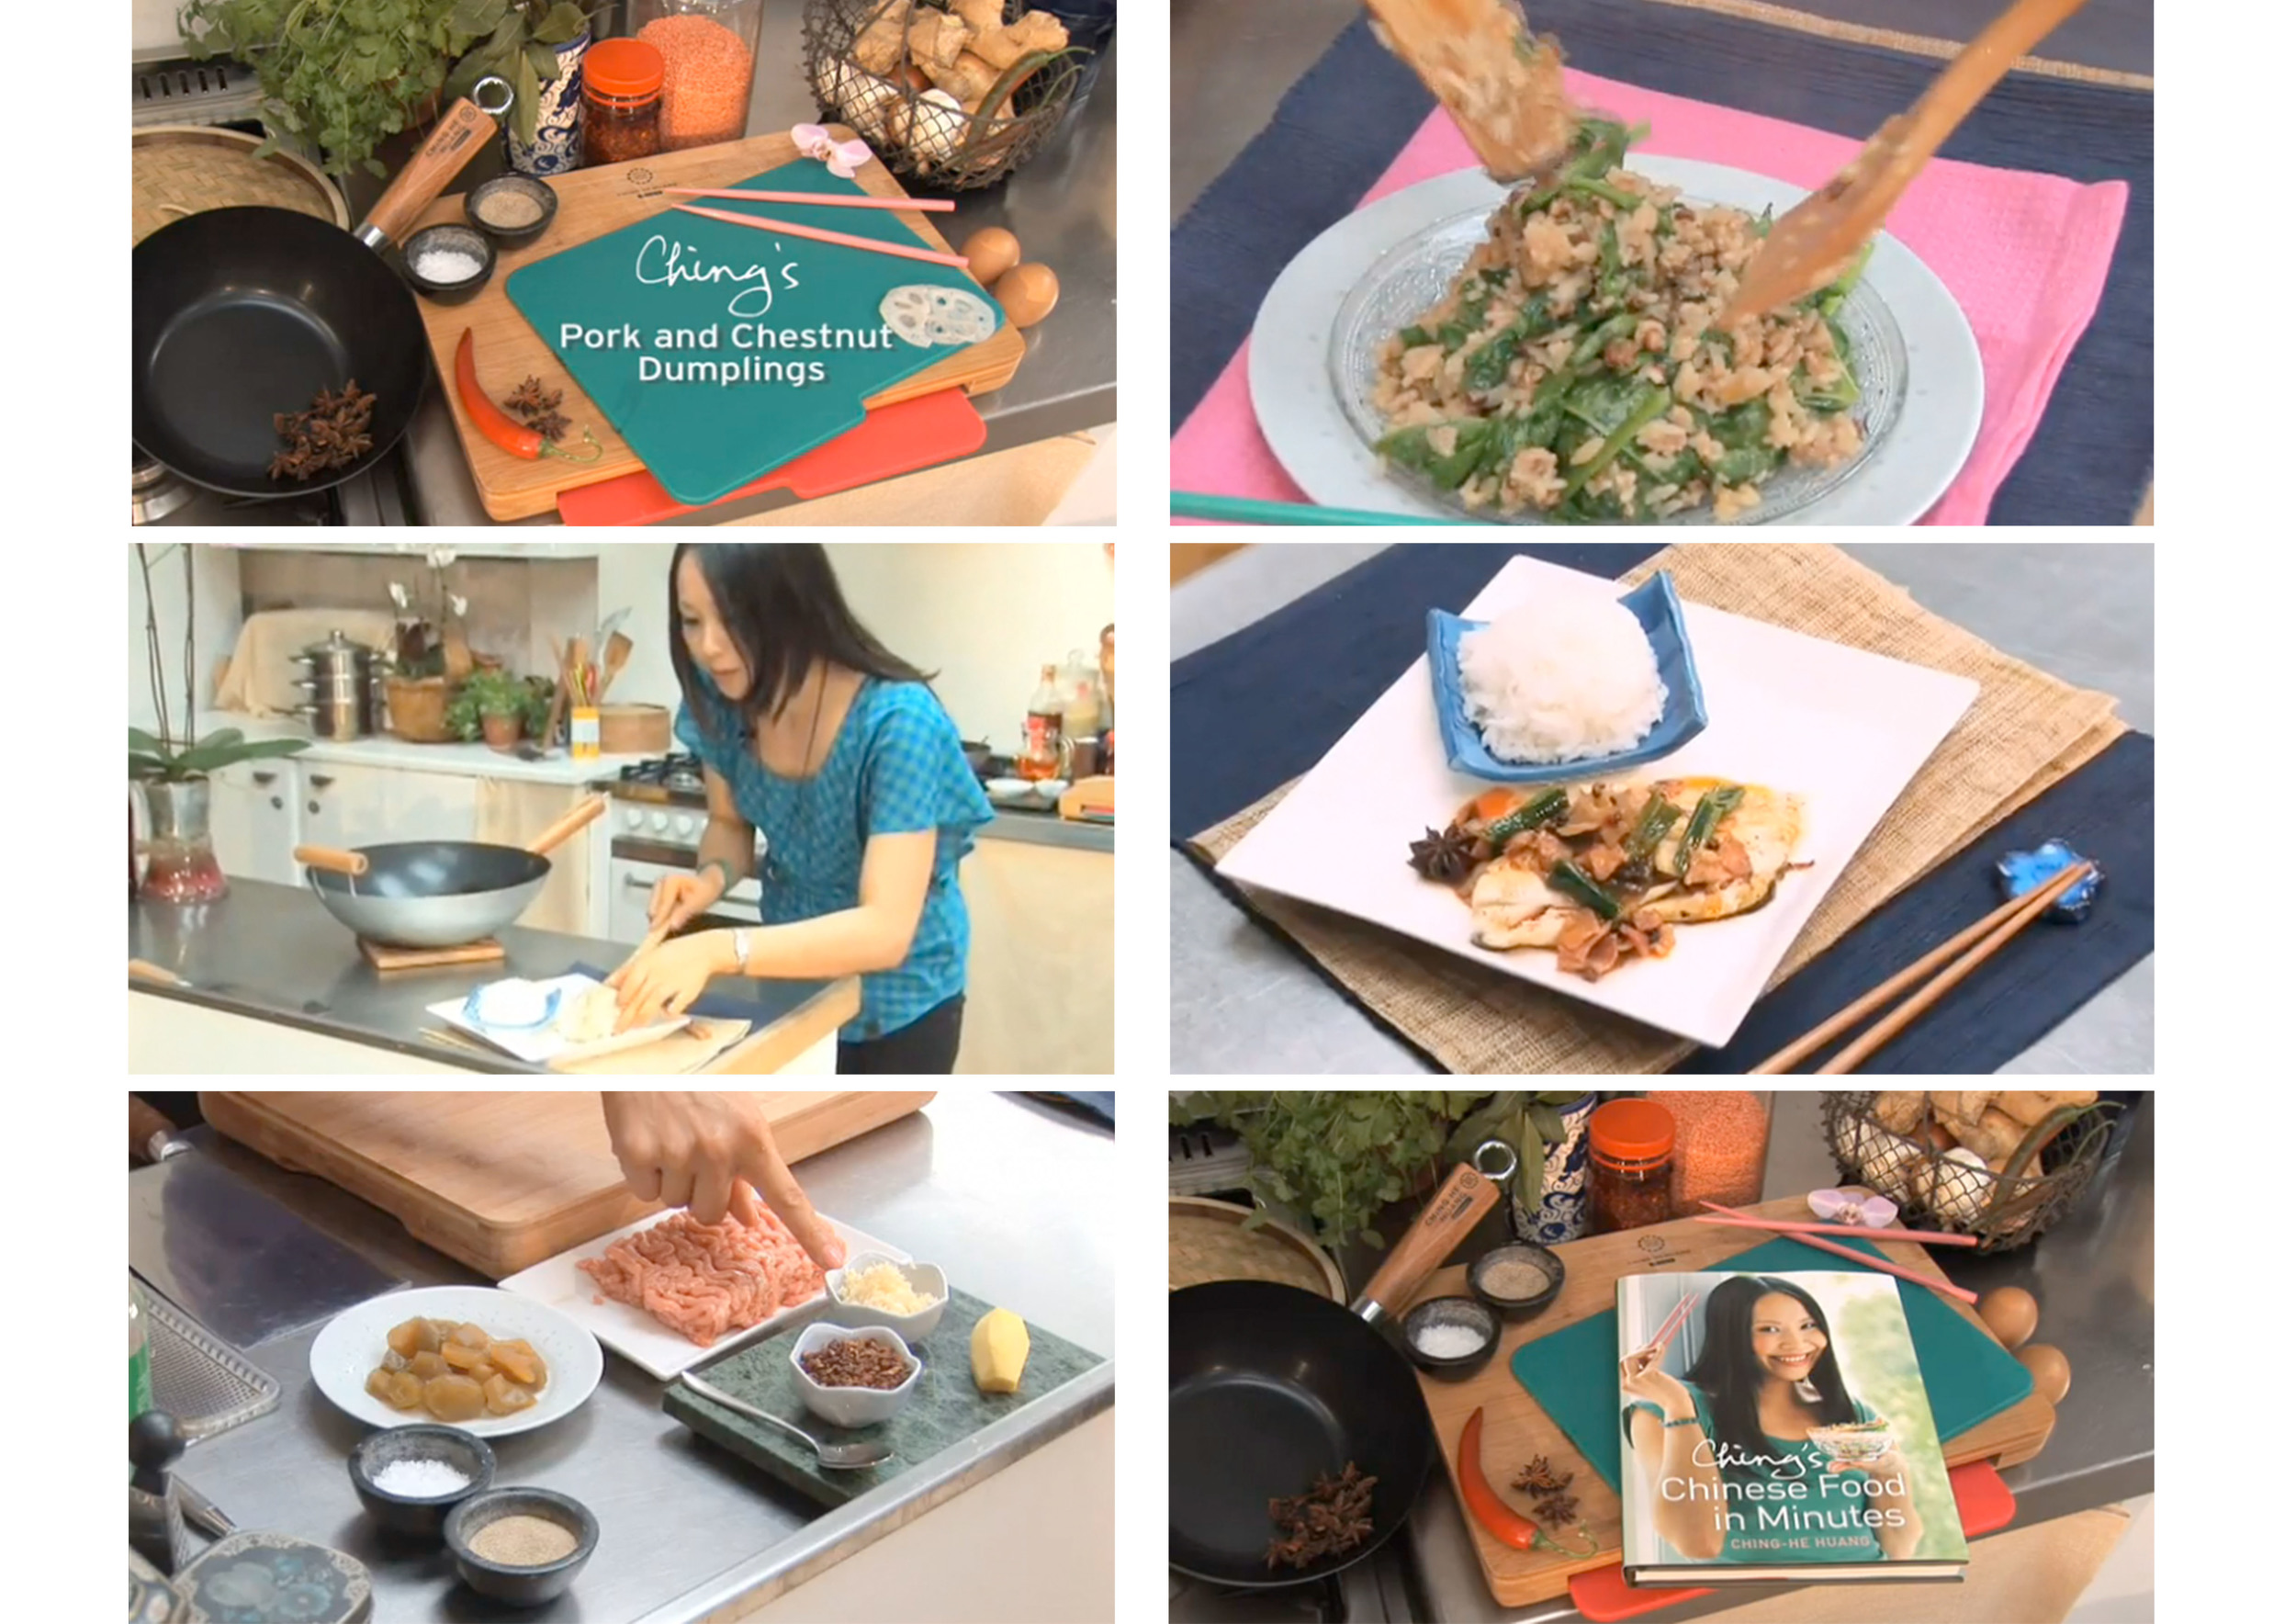 Ching's Chinese Food in Minutes  Stills from a series of viral videos to promote chef Ching He Huang's latest book title